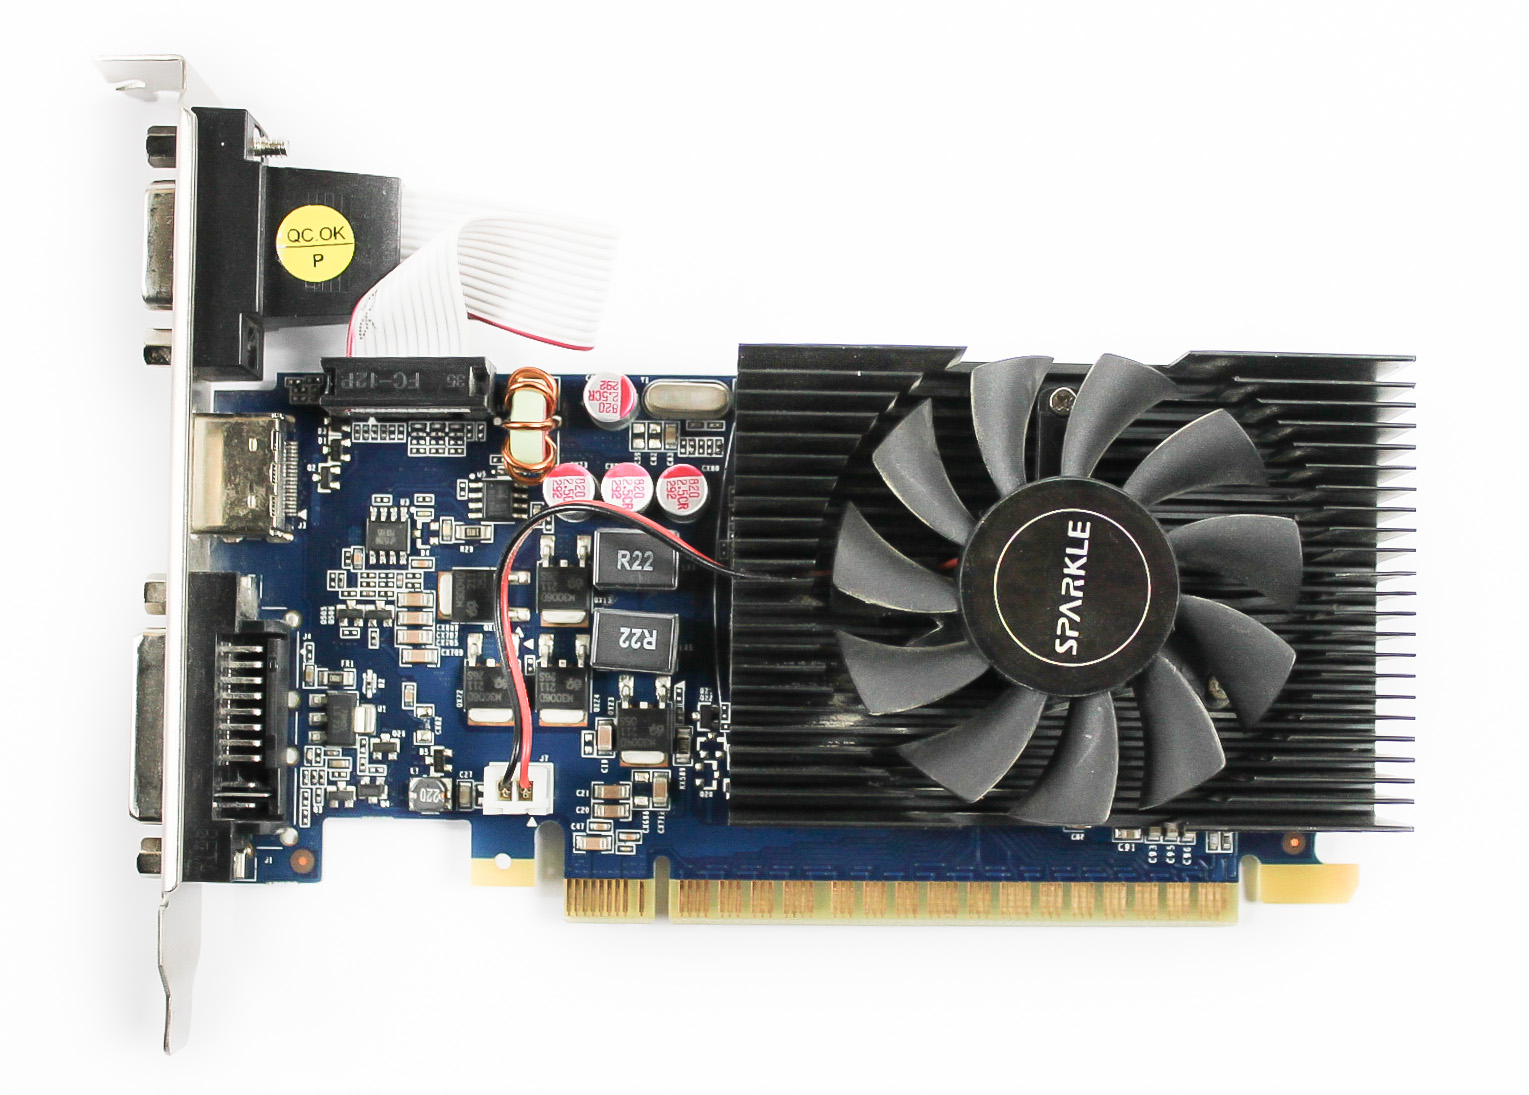 SX640LS2048LCA Sparkle GeForce GT640 2GB DDR3 VGA/HDMI/DVI PCIe Graphic Card